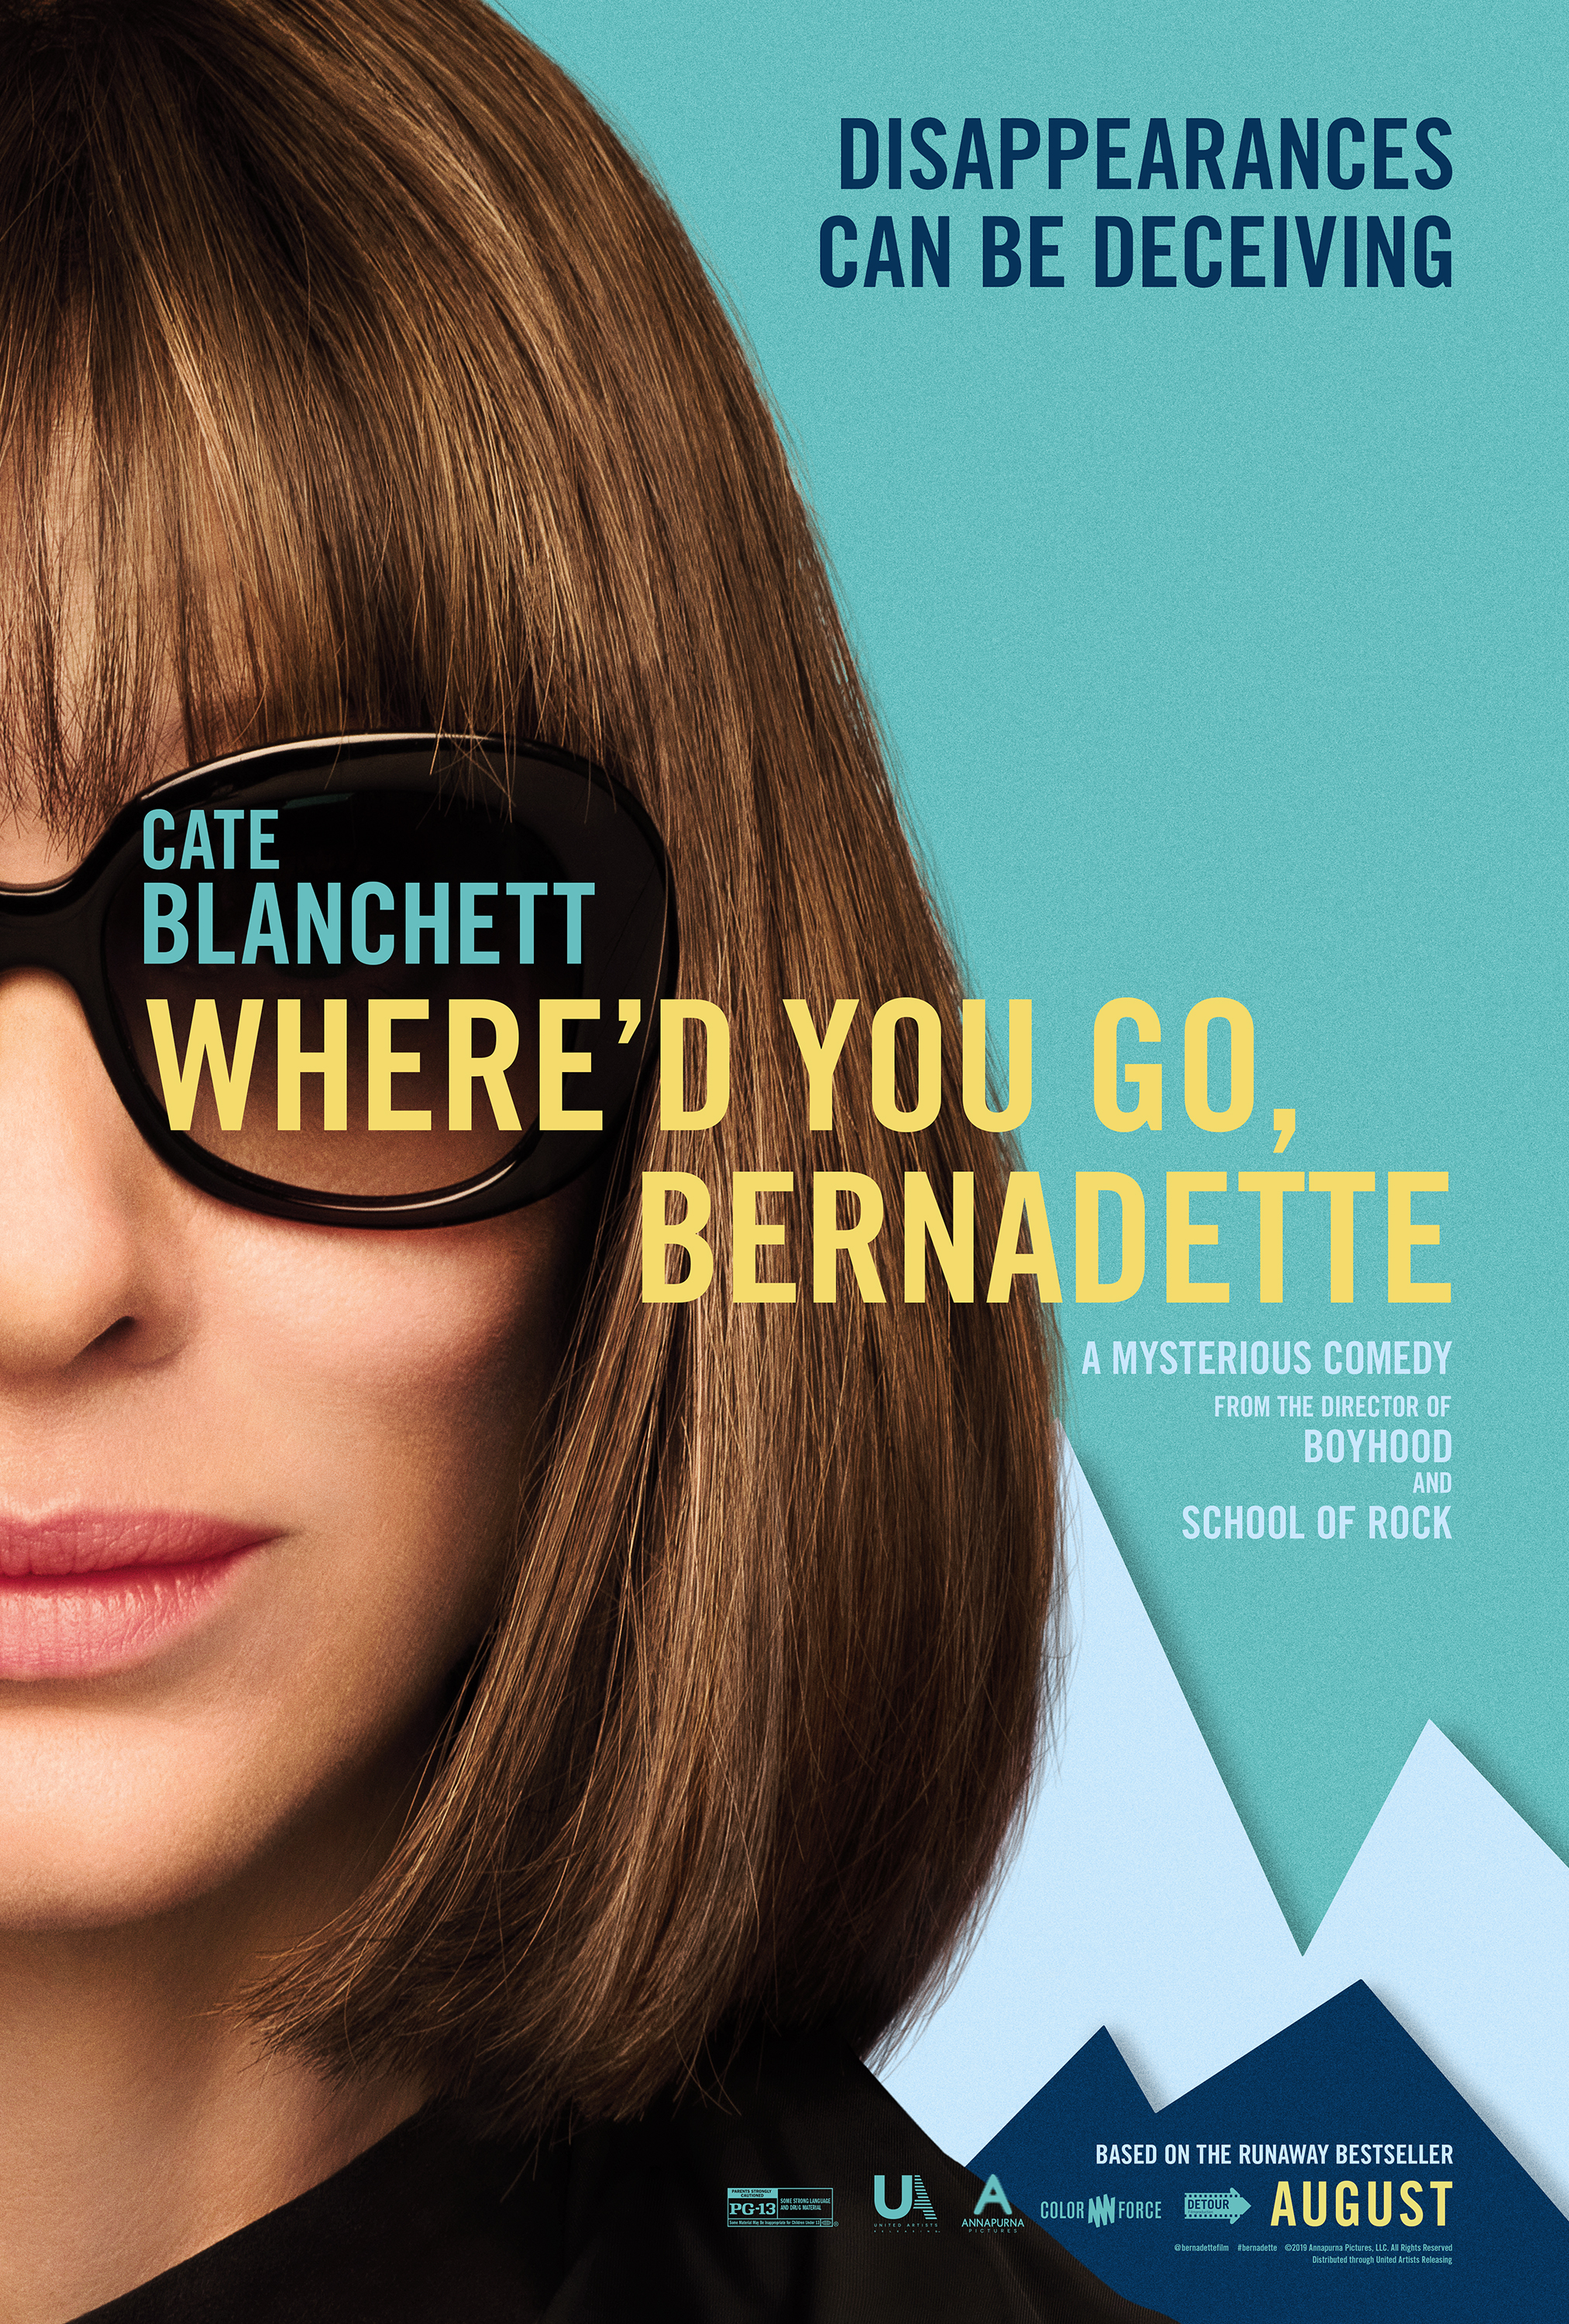 Kur tu pradingai, Bernadeta? (2019) / Whered You Go, Bernadette